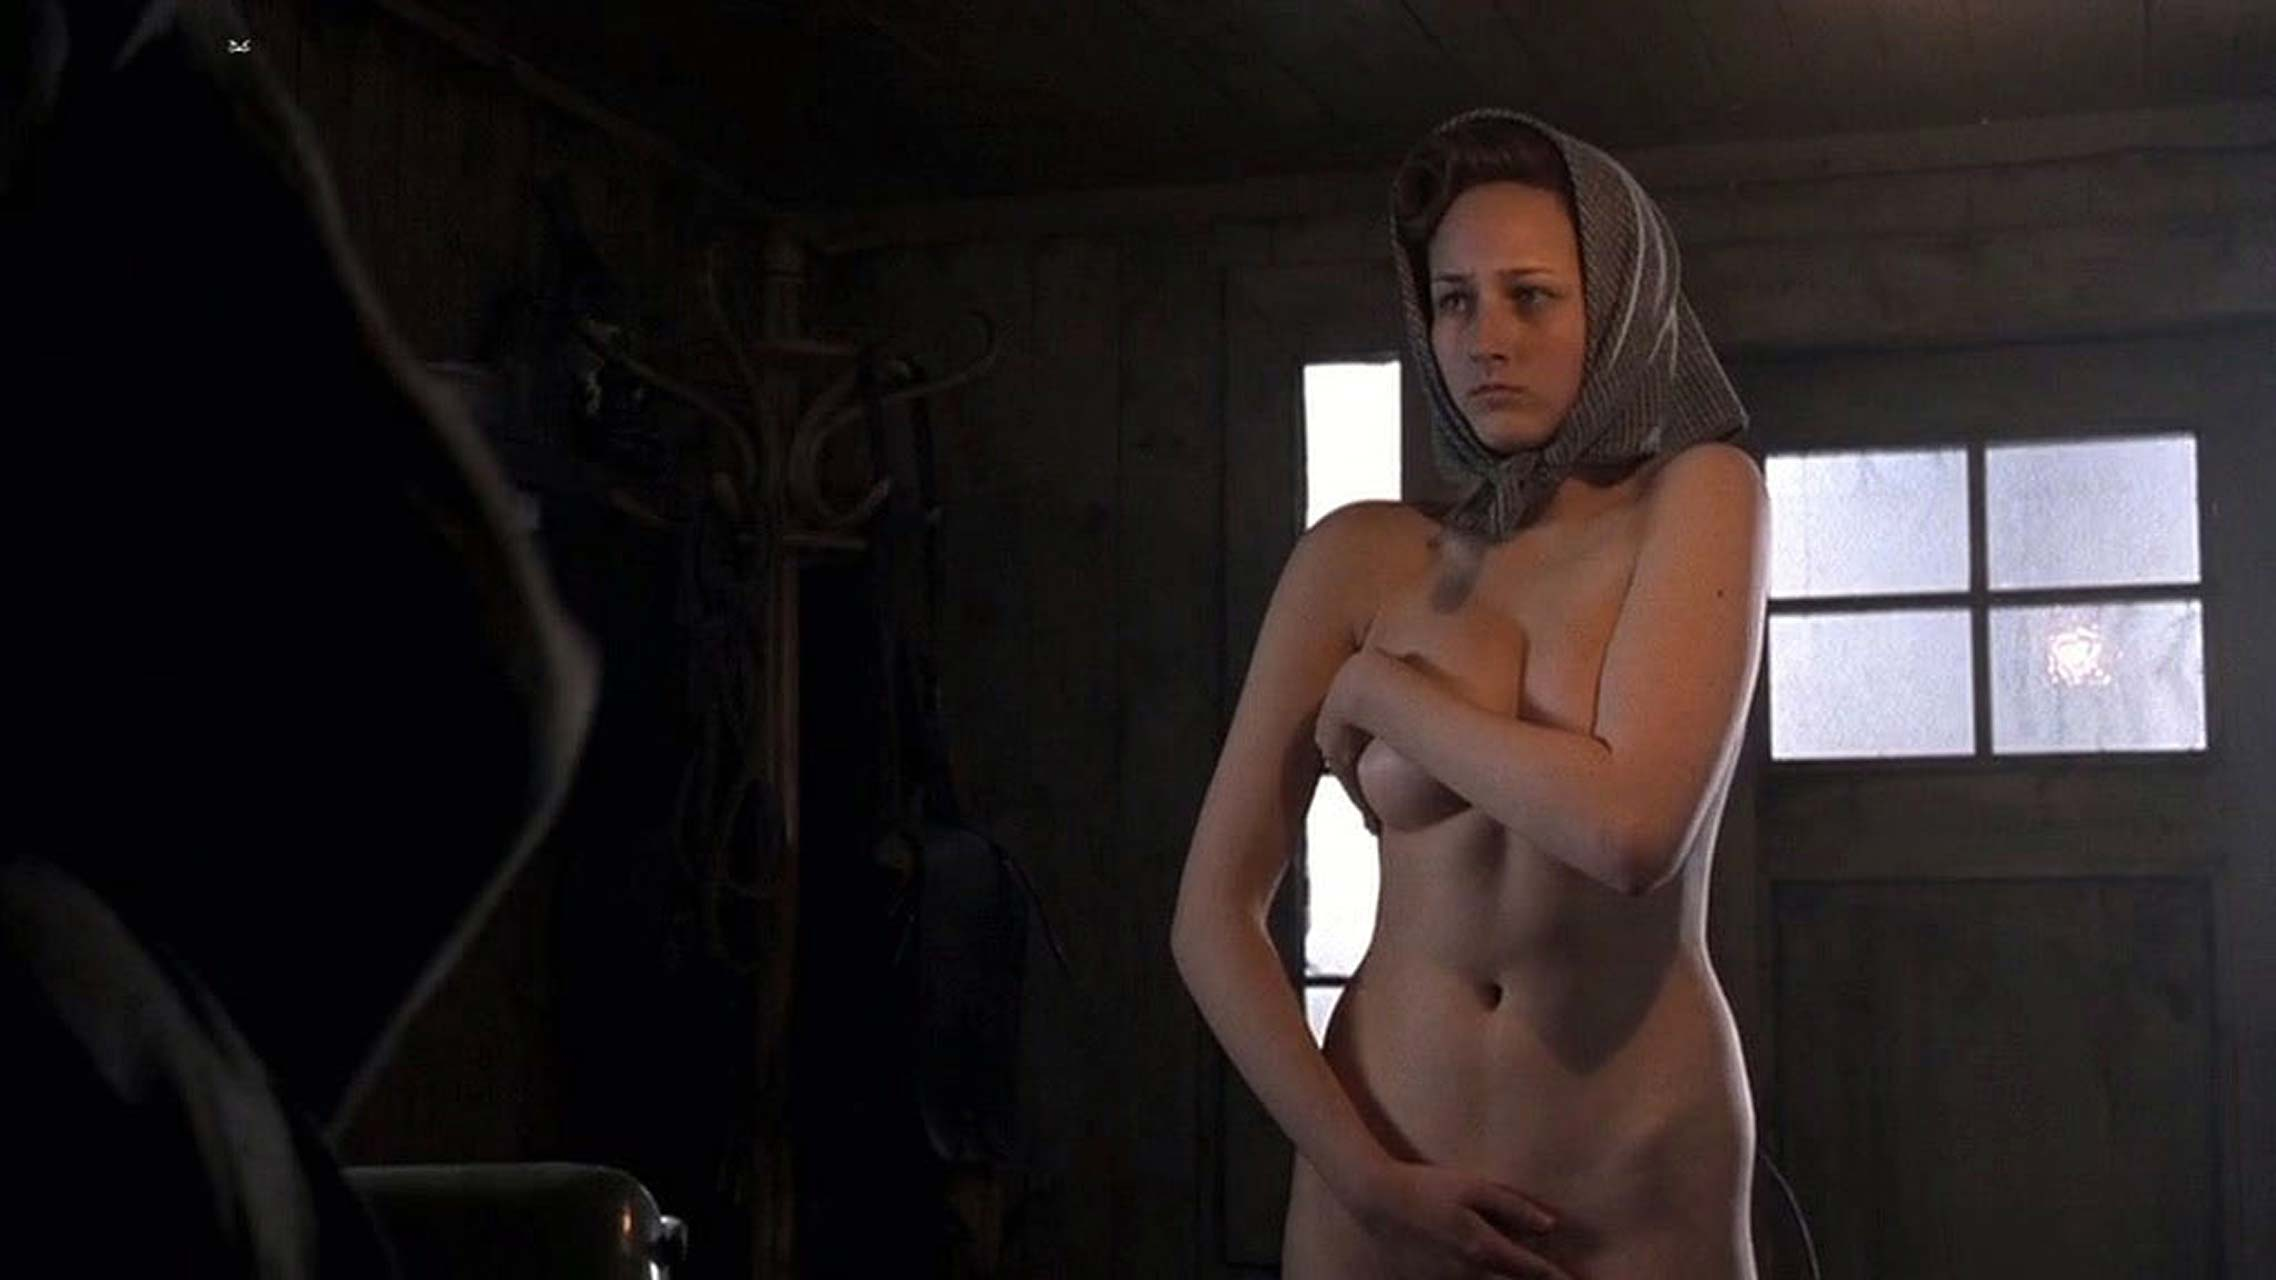 Leelee sobieski big tits in sex scene in her bra with cleavage